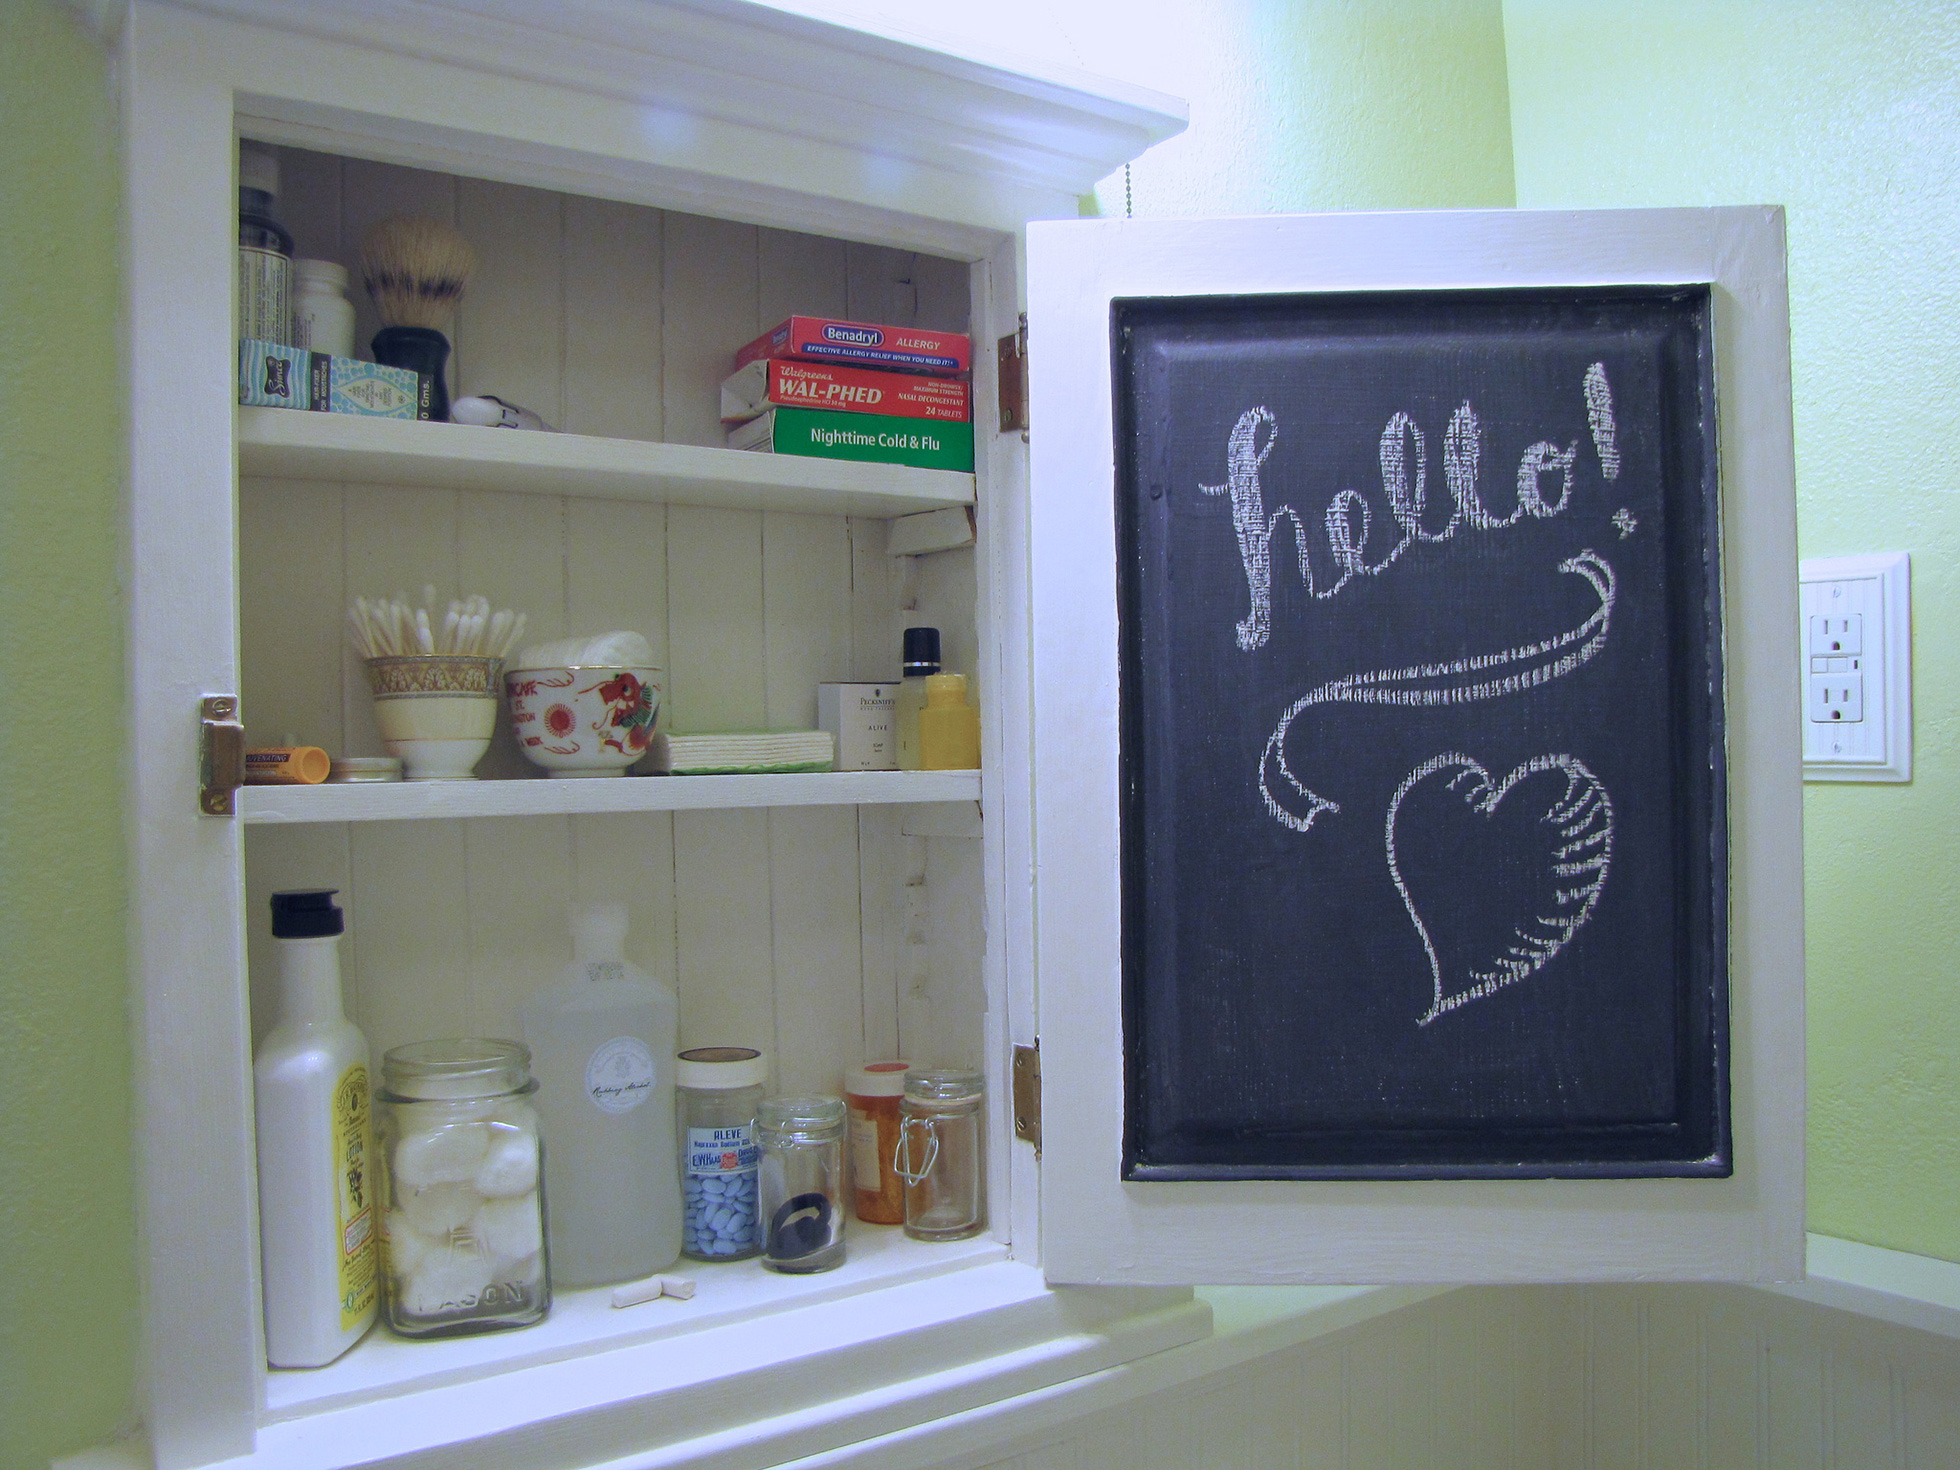 Recessed medicine cabinet with chalkboard inside